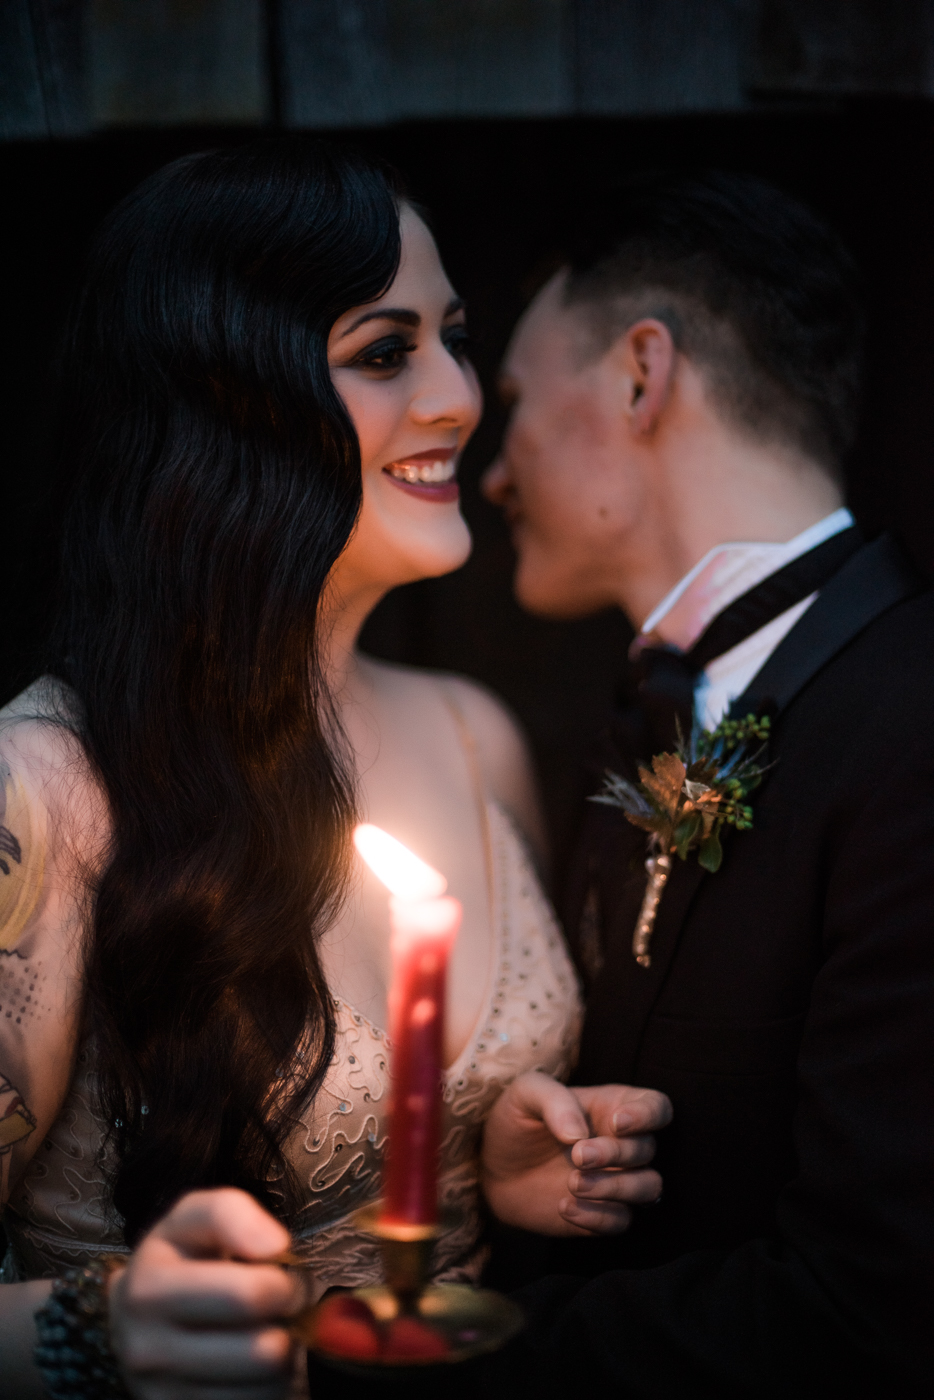 and-how-imaging-gothic-inspired-styled-shoot-gothic-wedding-1920s-theme-wedding-1920s-inspired-styled-shoot-halloween-styled-shoot-gothic-inspired-wedding-76